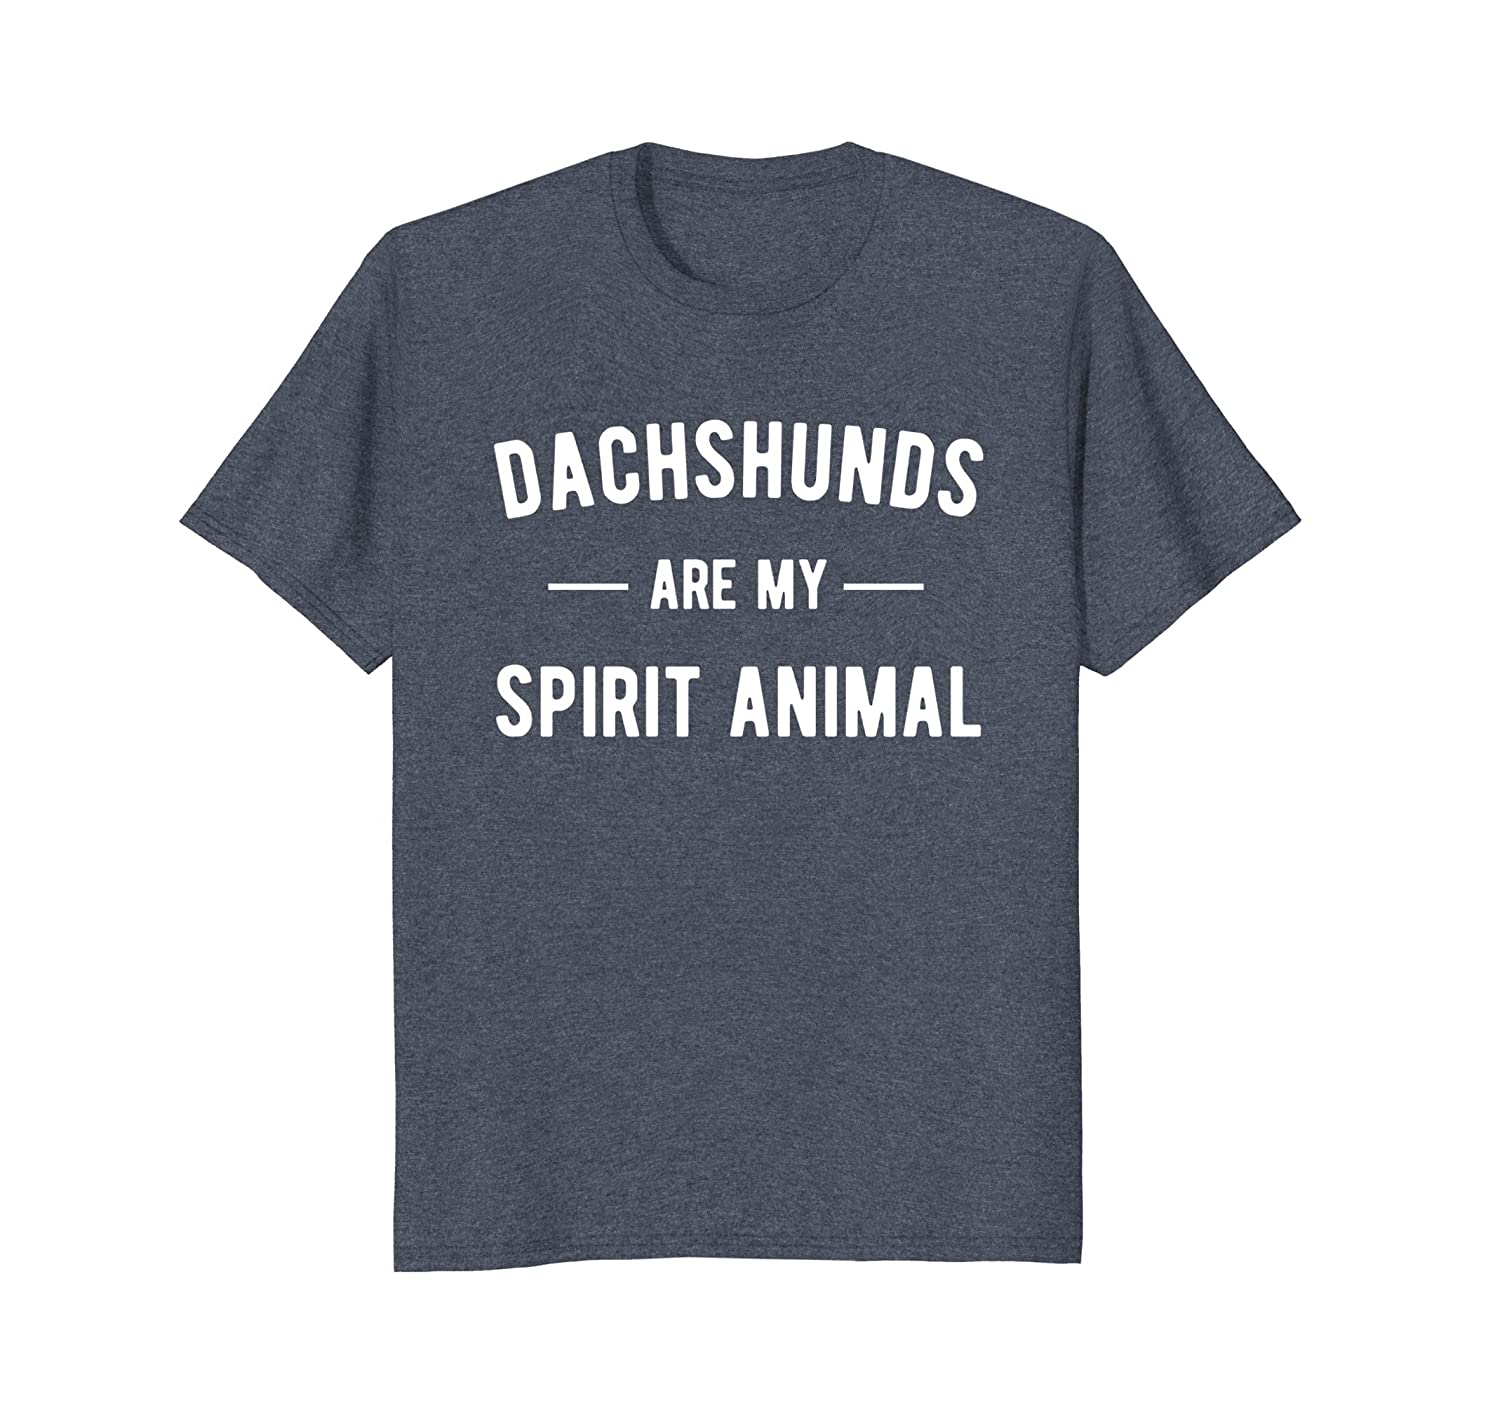 Dachshund Shirts for Women Dachshunds are My Spirit Animal-AZP